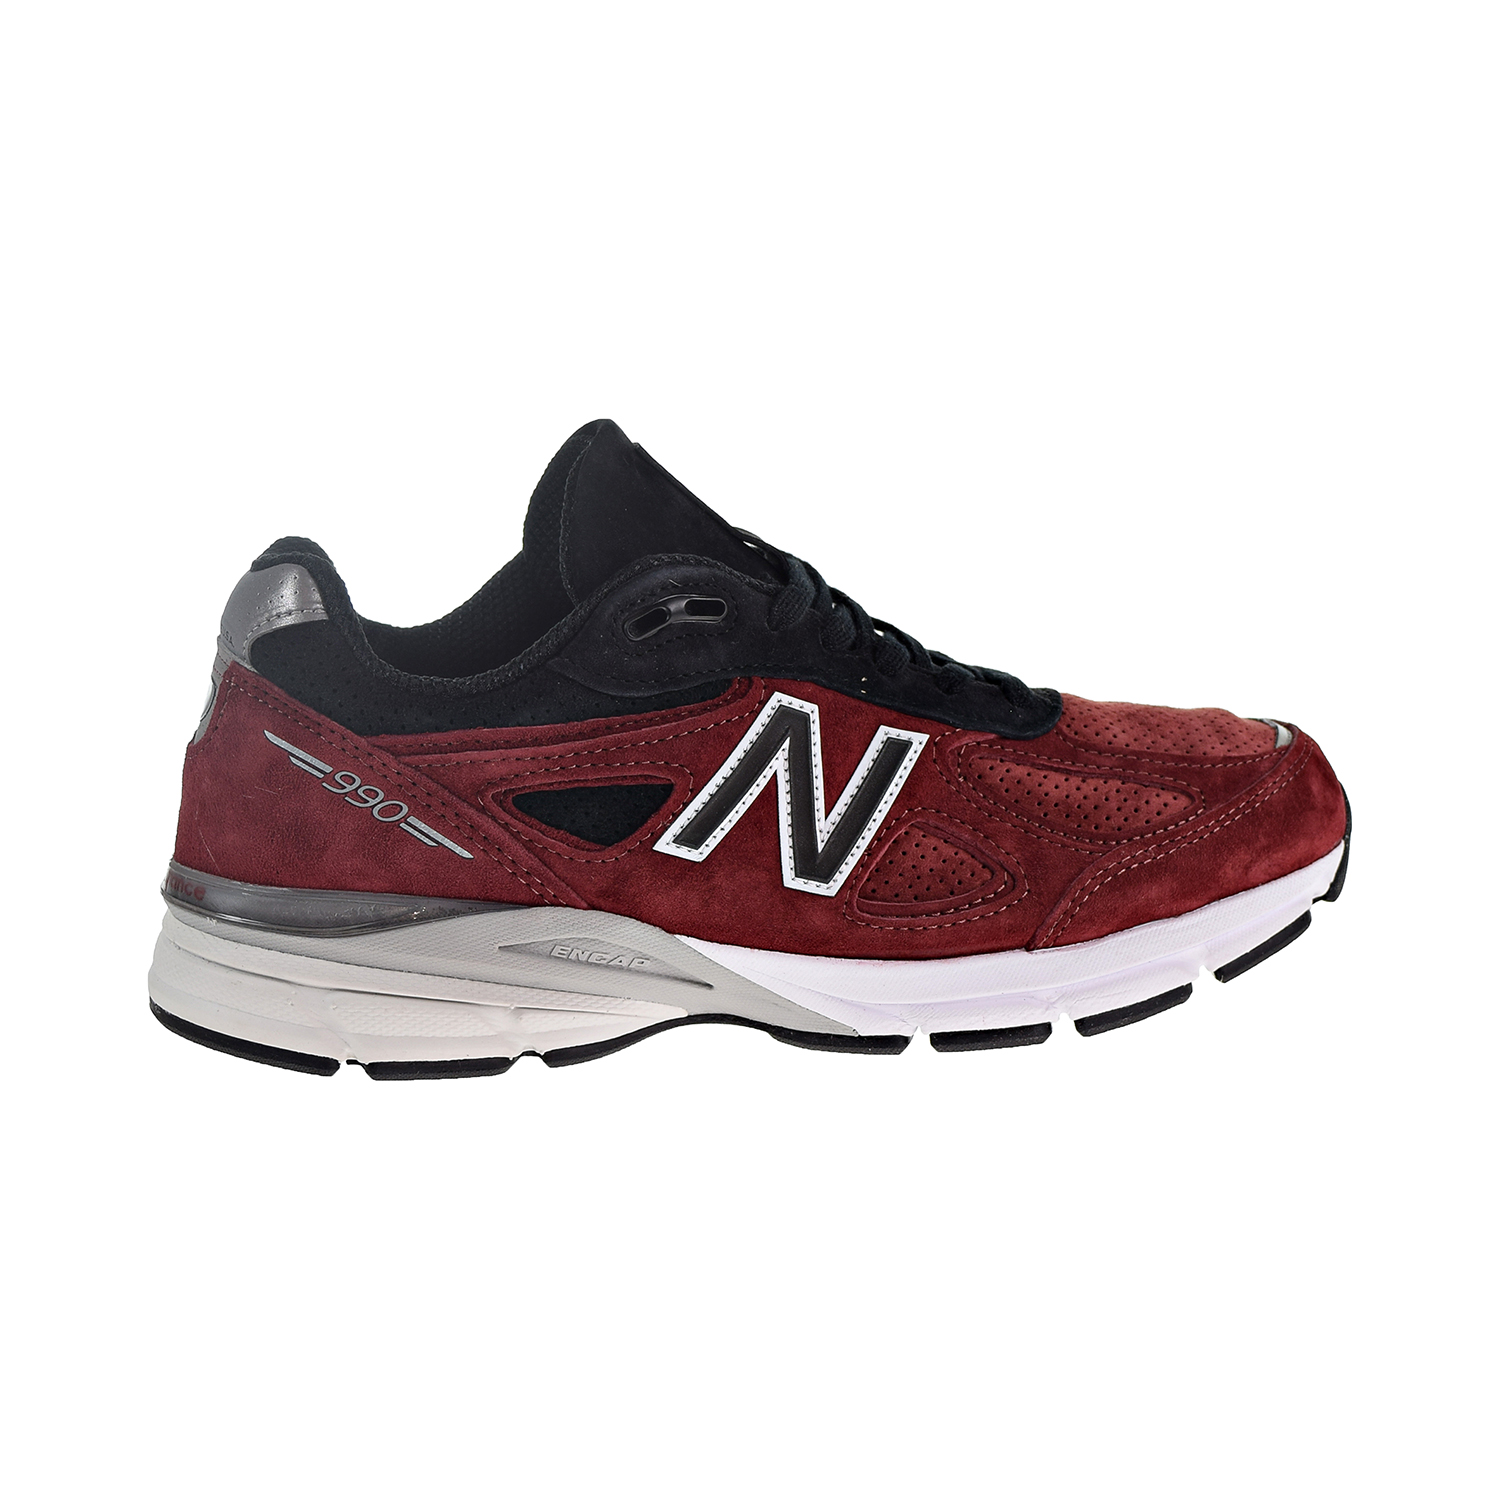 best sneakers 05907 57550 Details about New Balance 990v4 Men's Shoes Black/Mercury Red M990RB4